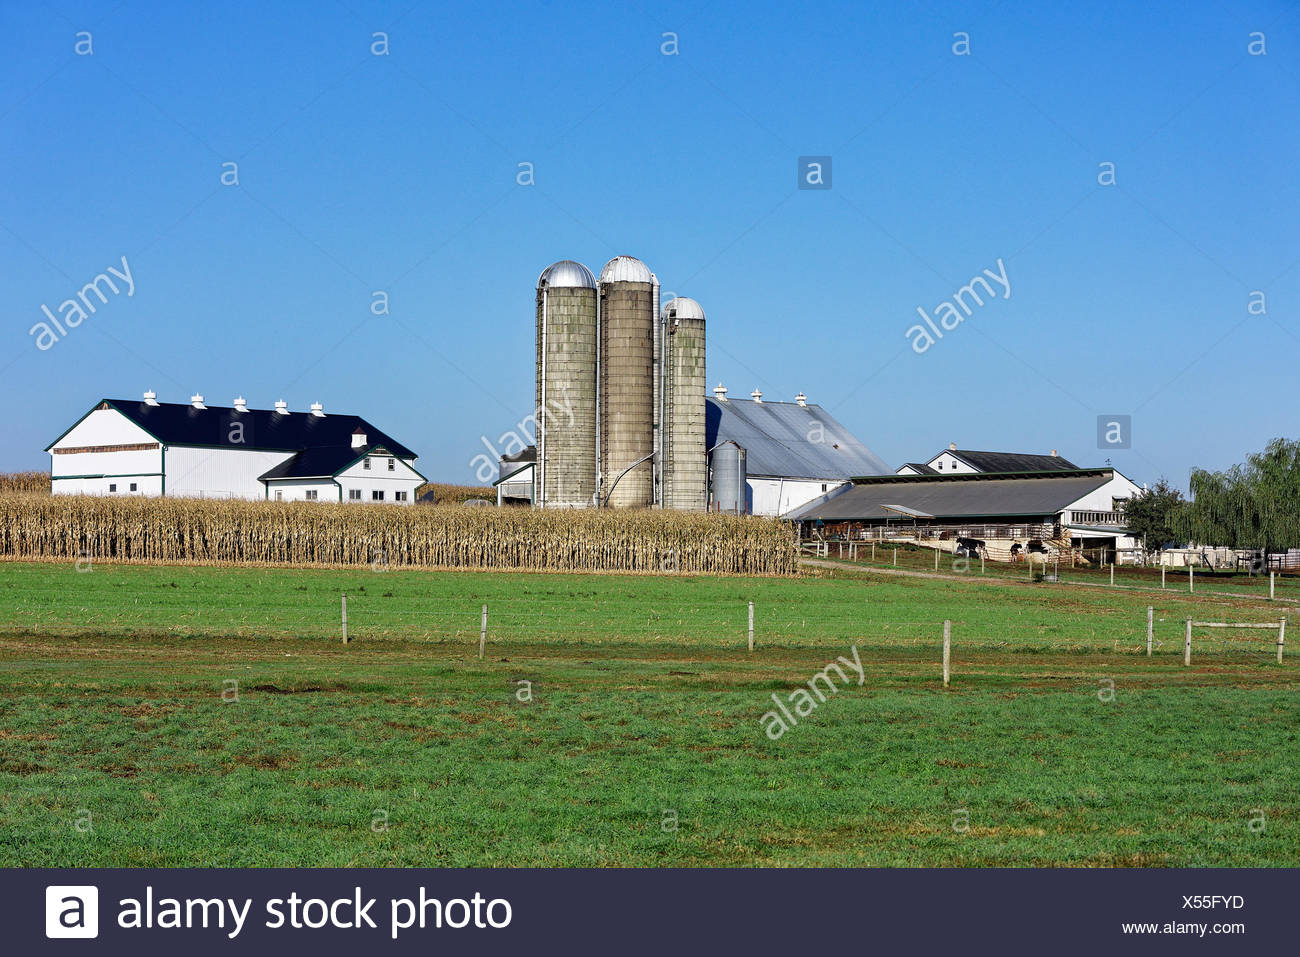 Amish farm, New Holland, Lancaster, Pennsylvania, USA - Stock Image